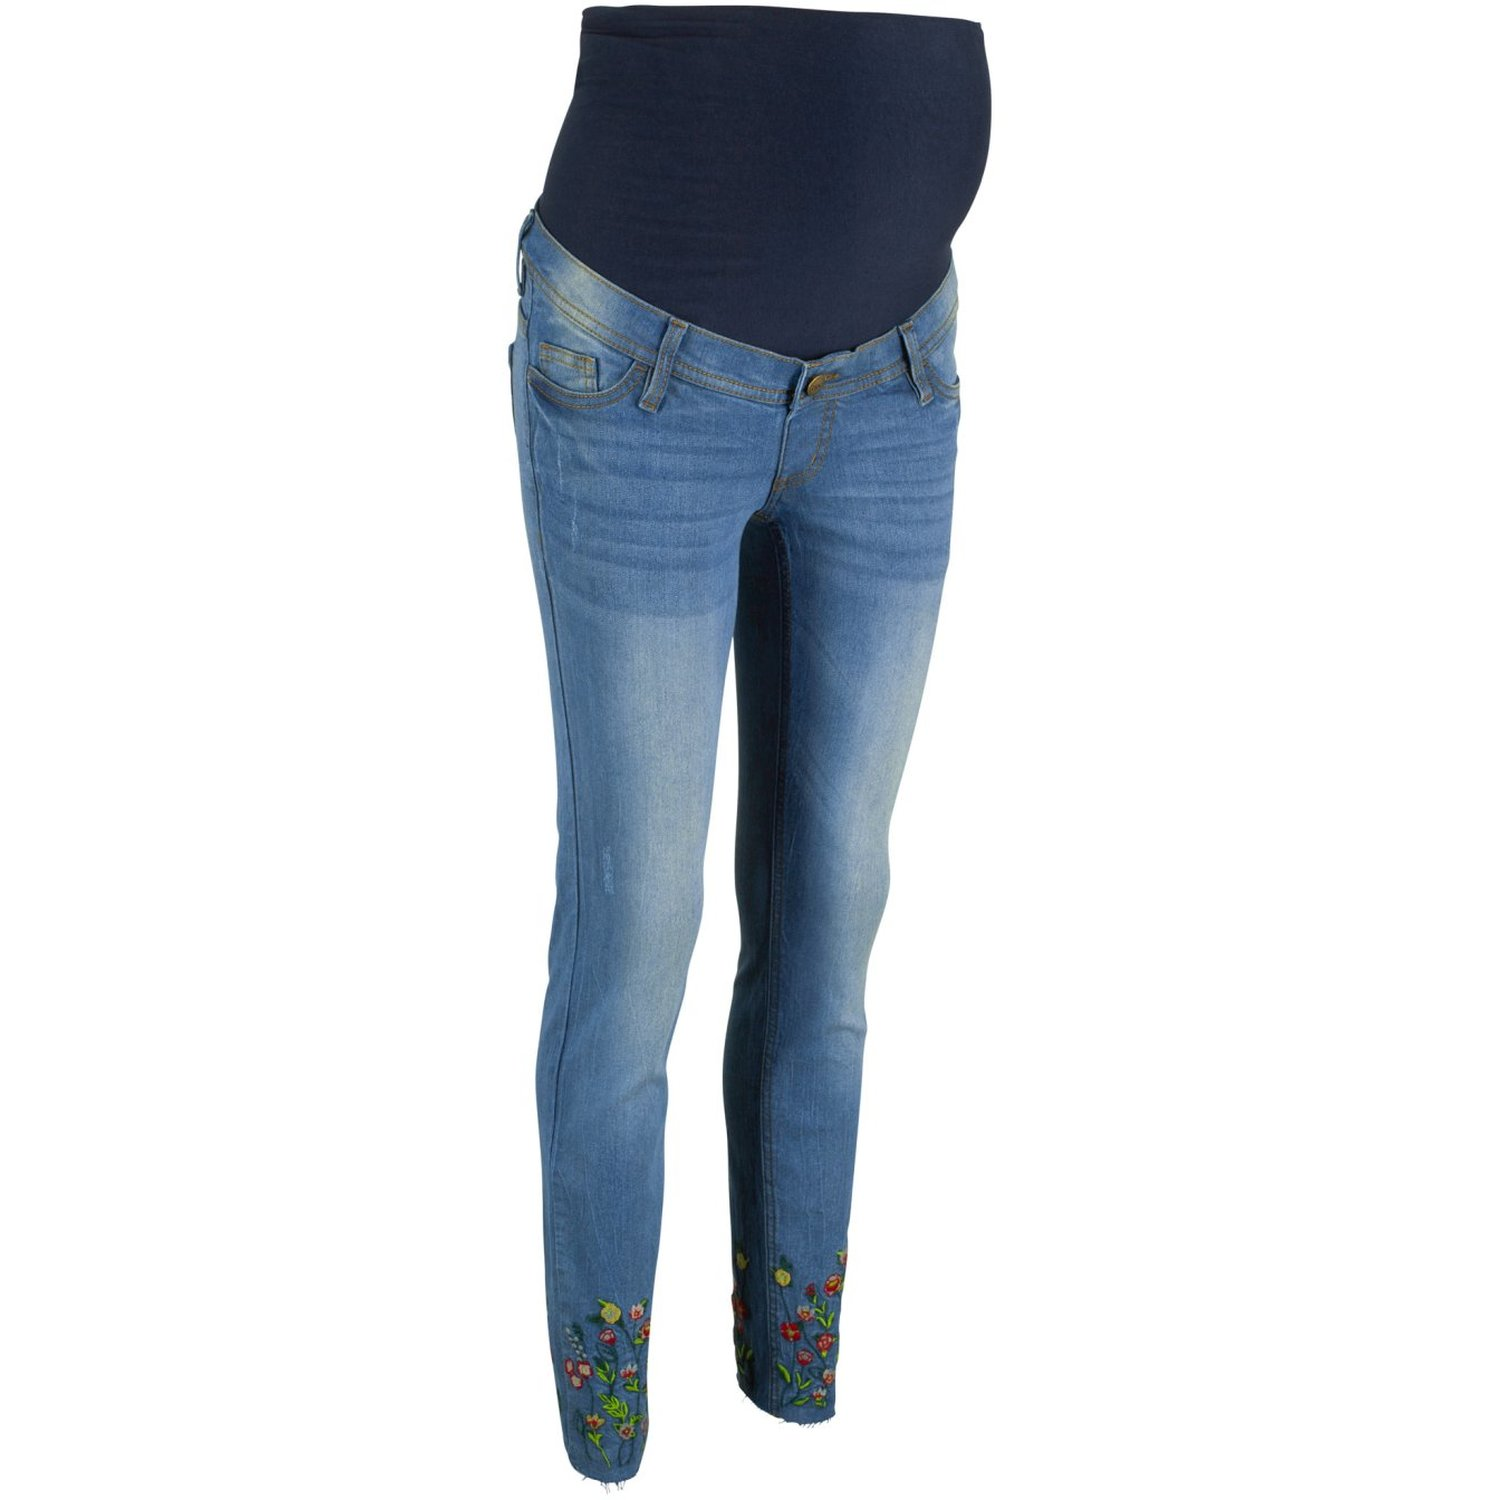 Damen Umstandsjeans mit Stickerei, in Blau